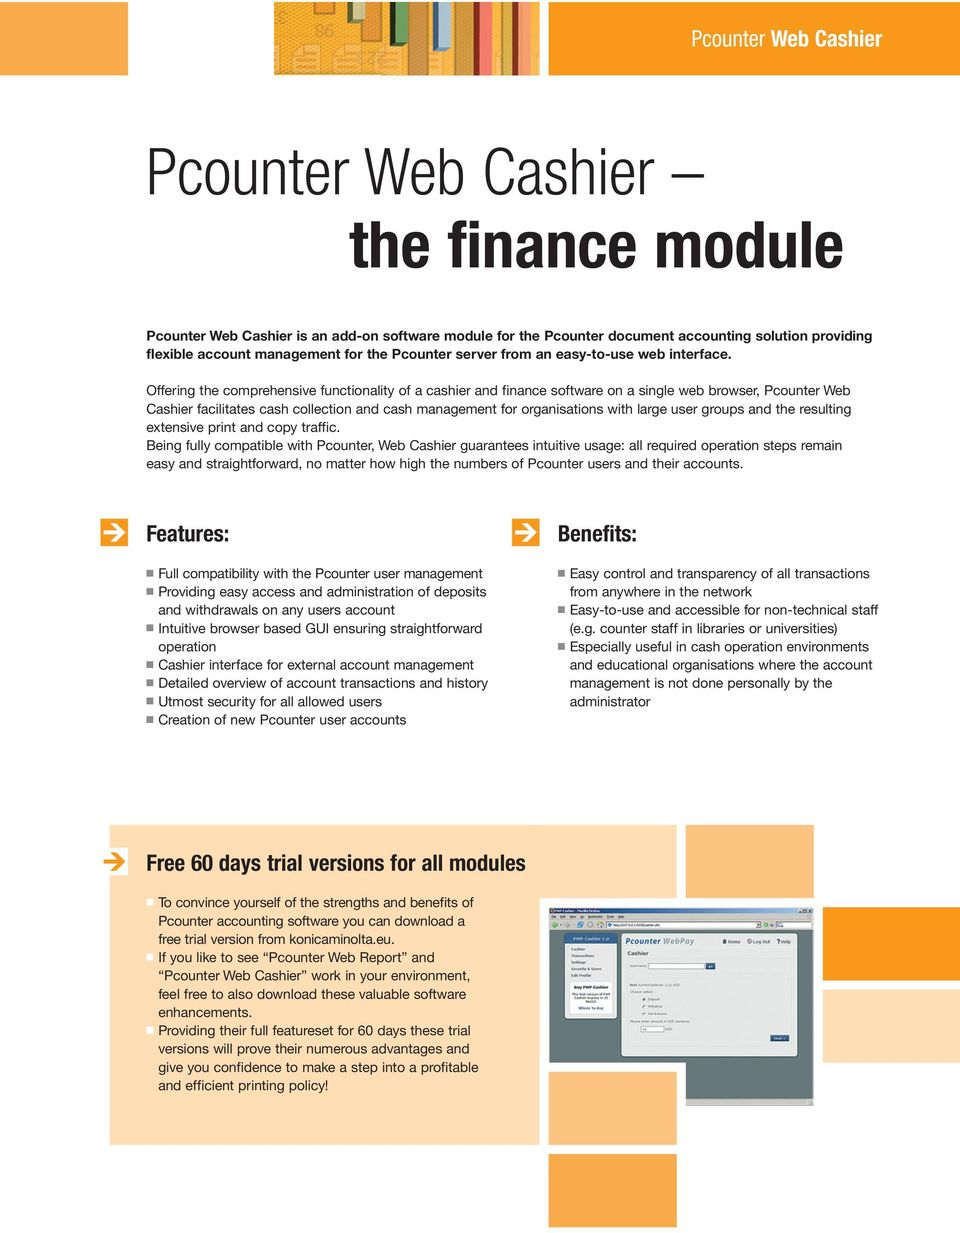 Offering the comprehensive functionality of a cashier and finance software on a single web browser, Pcounter Web Cashier facilitates cash collection and cash management for organisations with large